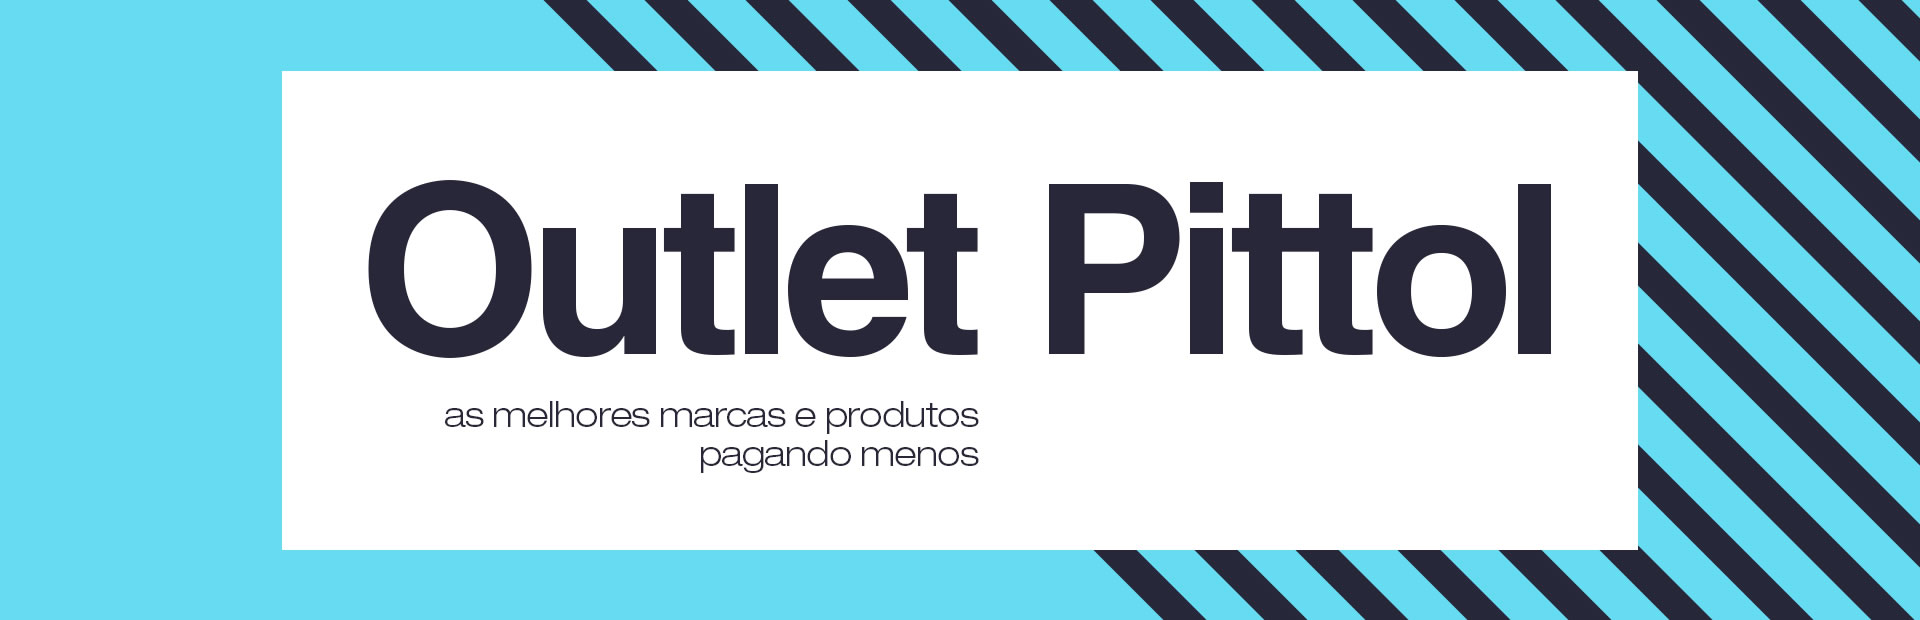 pittol_banner_topo_outlet2018